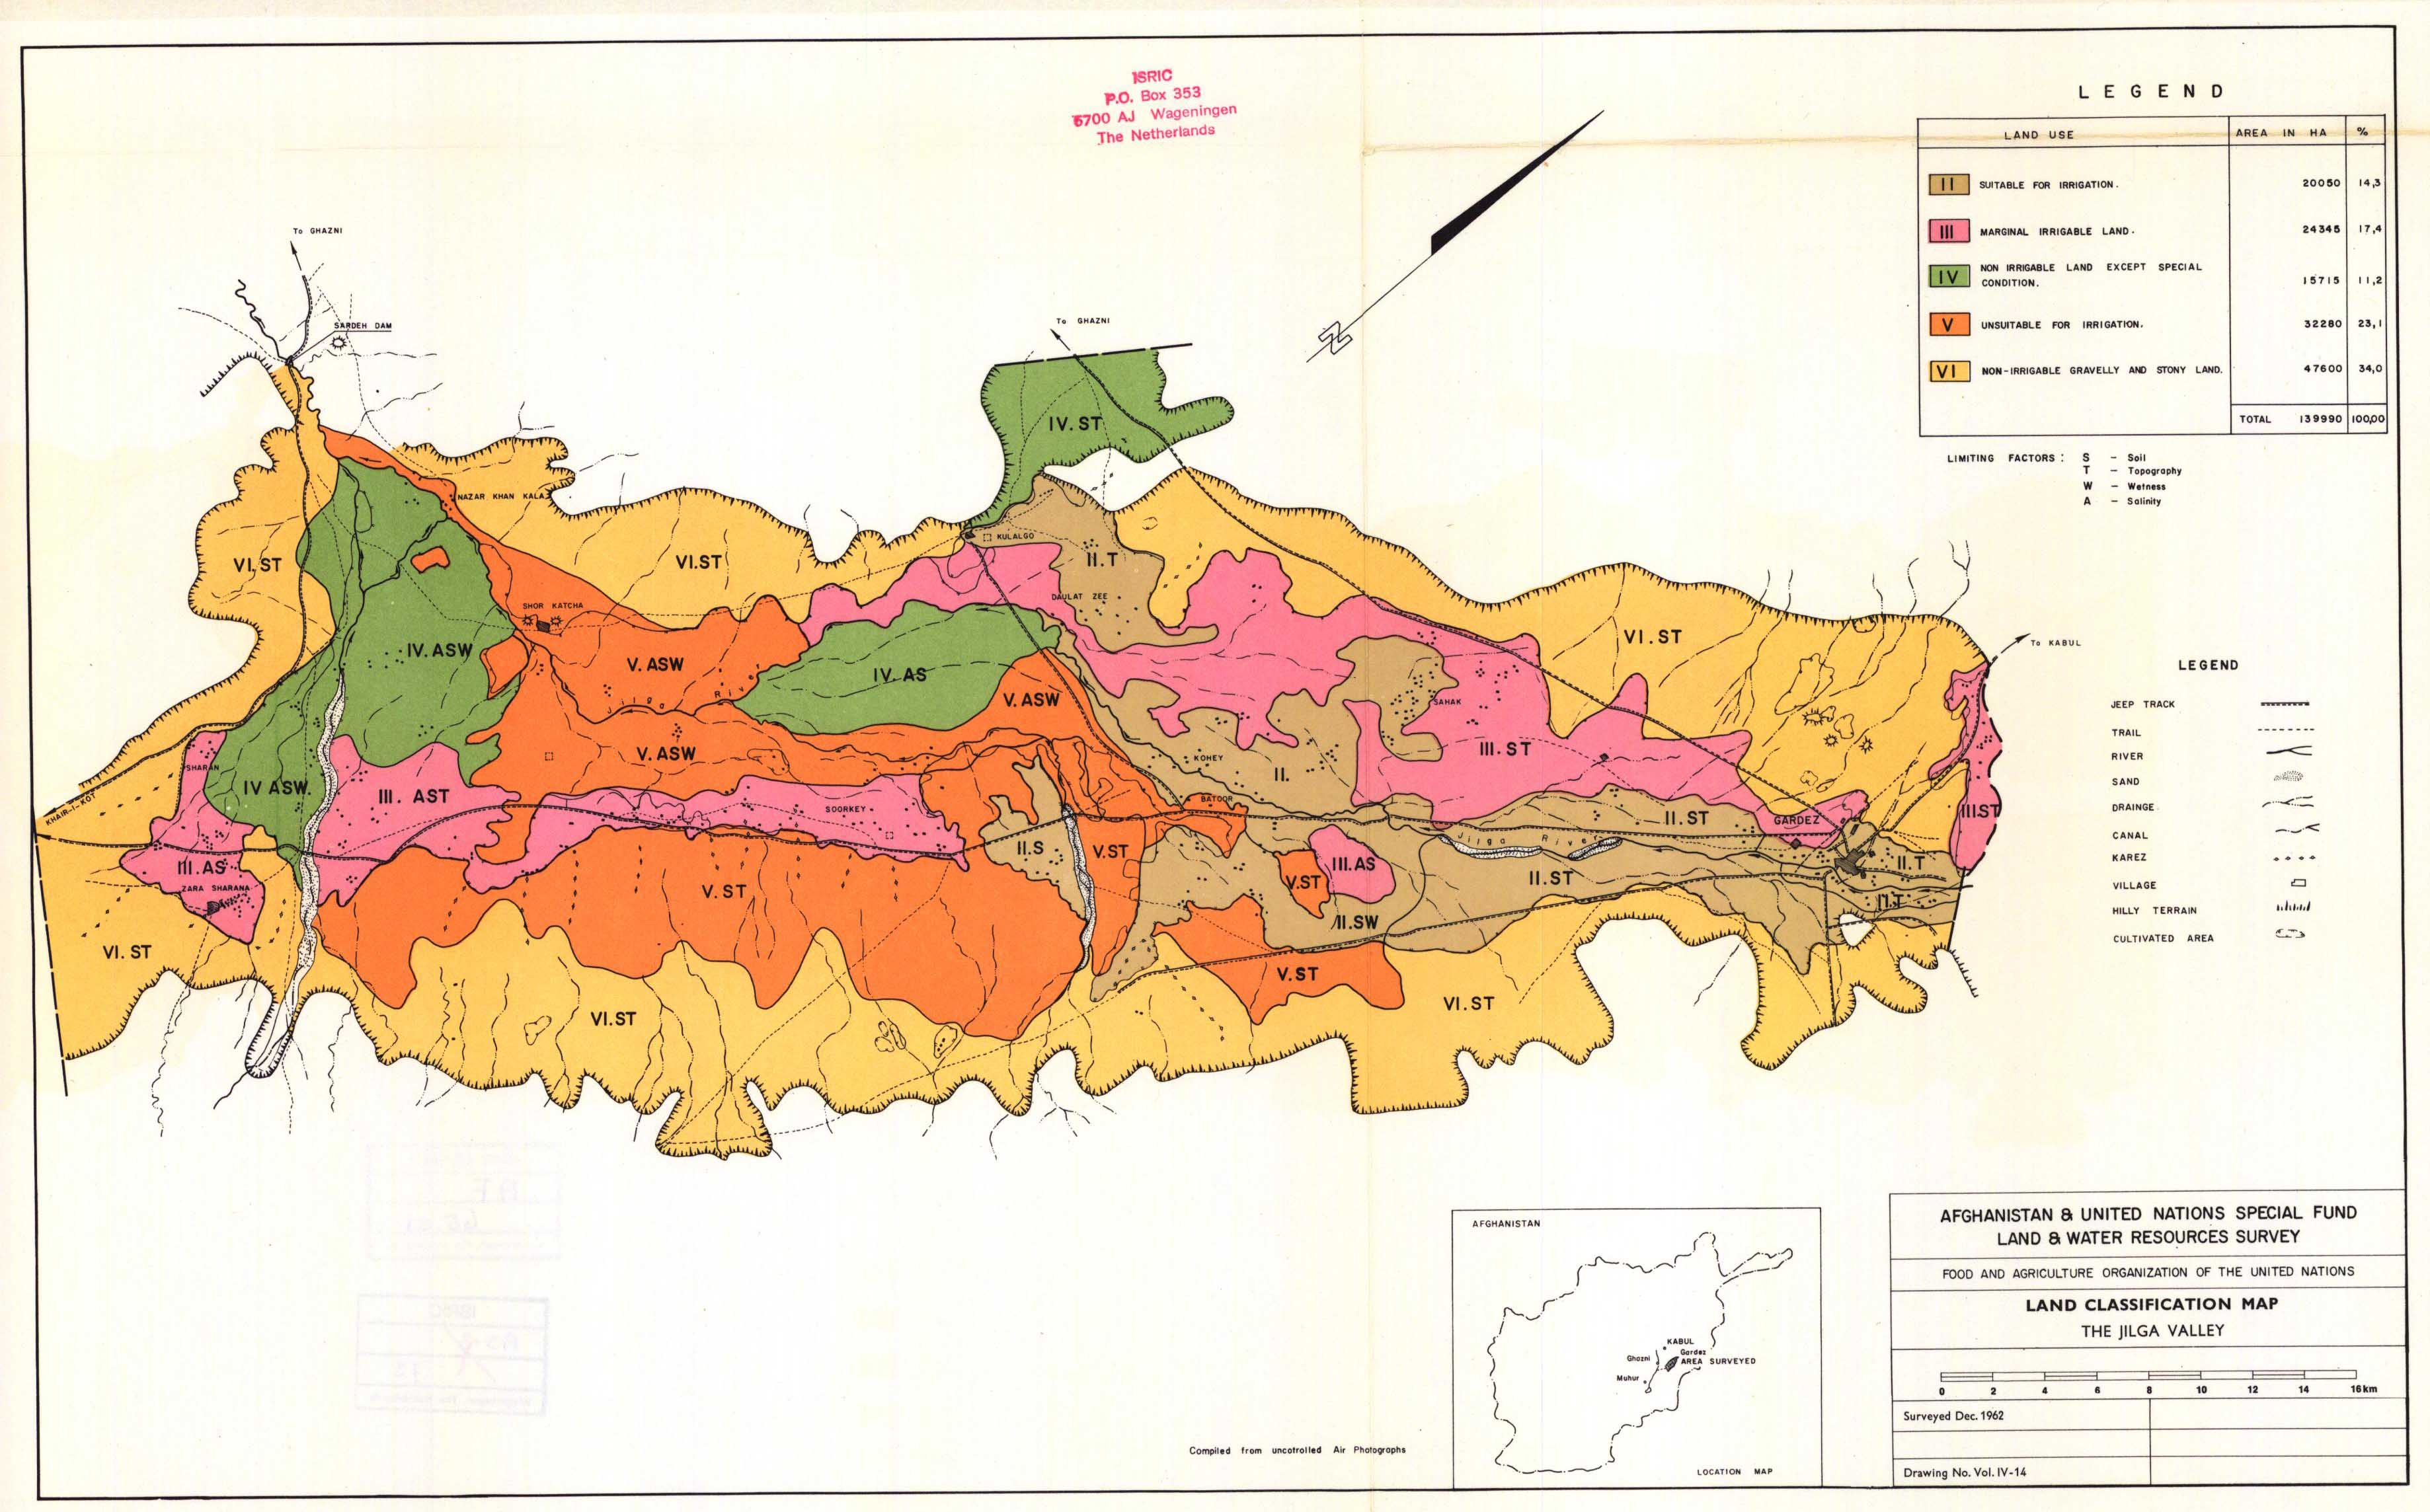 Soil esdac european commission resource type national soil maps eudasm maps maps documents themesub theme networkcooperations projects continent asia country afghanistan gumiabroncs Image collections